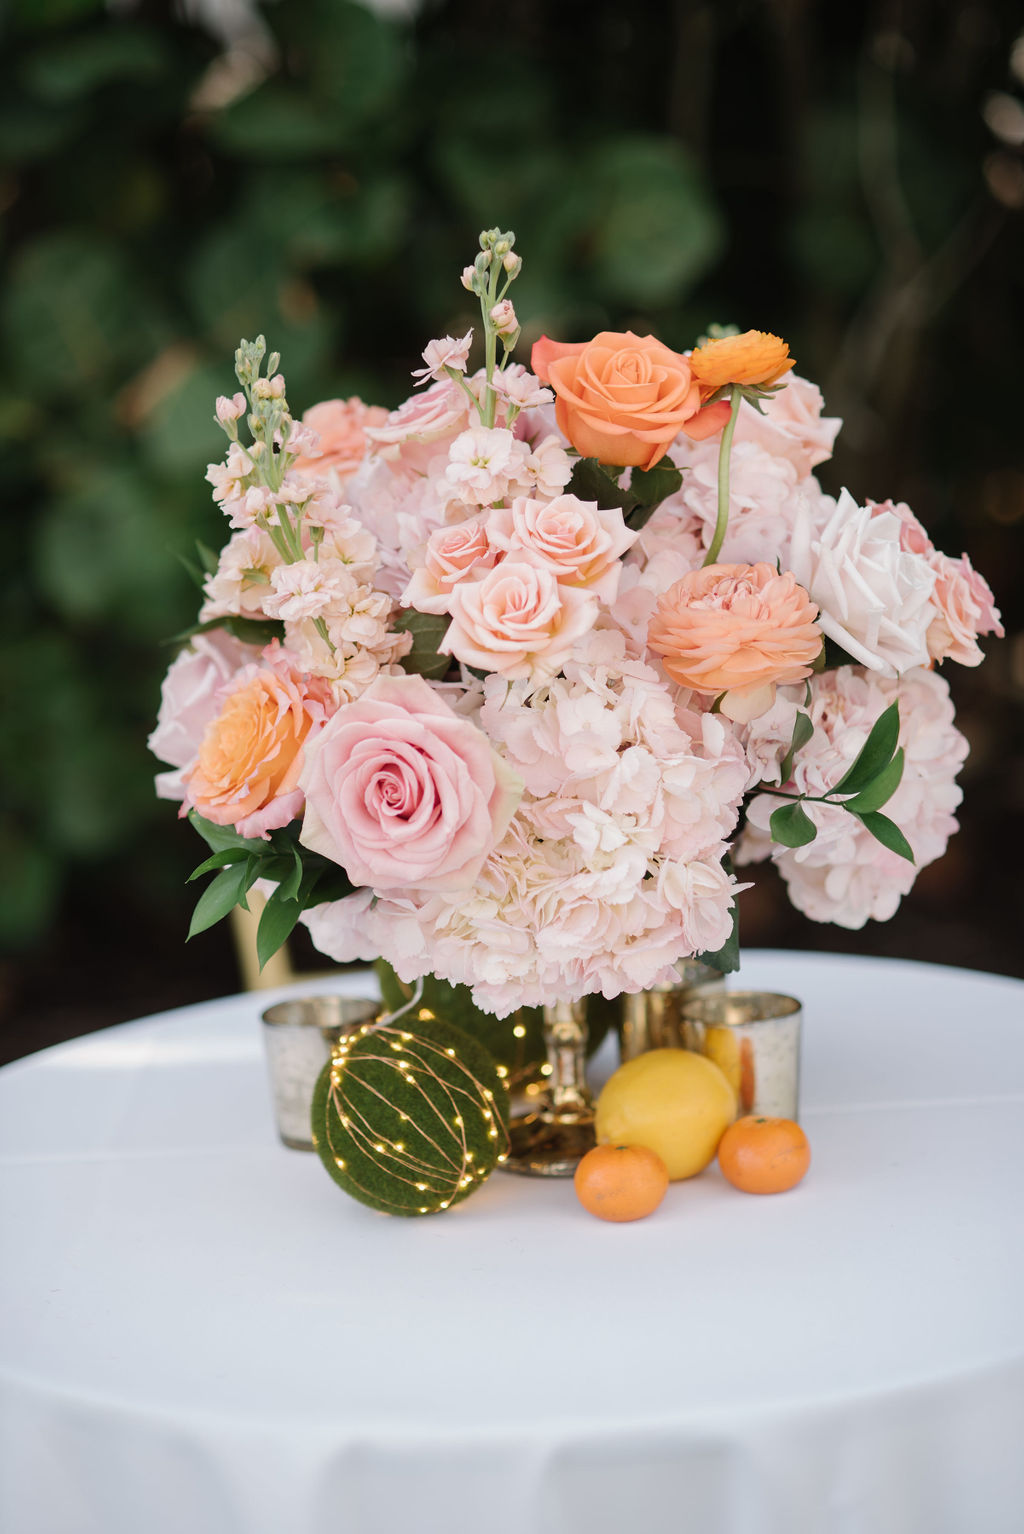 Romantic Whimsical Wedding Reception Decor, Blush Pink Hydrangeas, Orange and Pink Roses in Gold Vase Low Floral Centerpiece with Oranges and Lemon Fruits | Tampa Bay Wedding Florist Bruce Wayne Florals